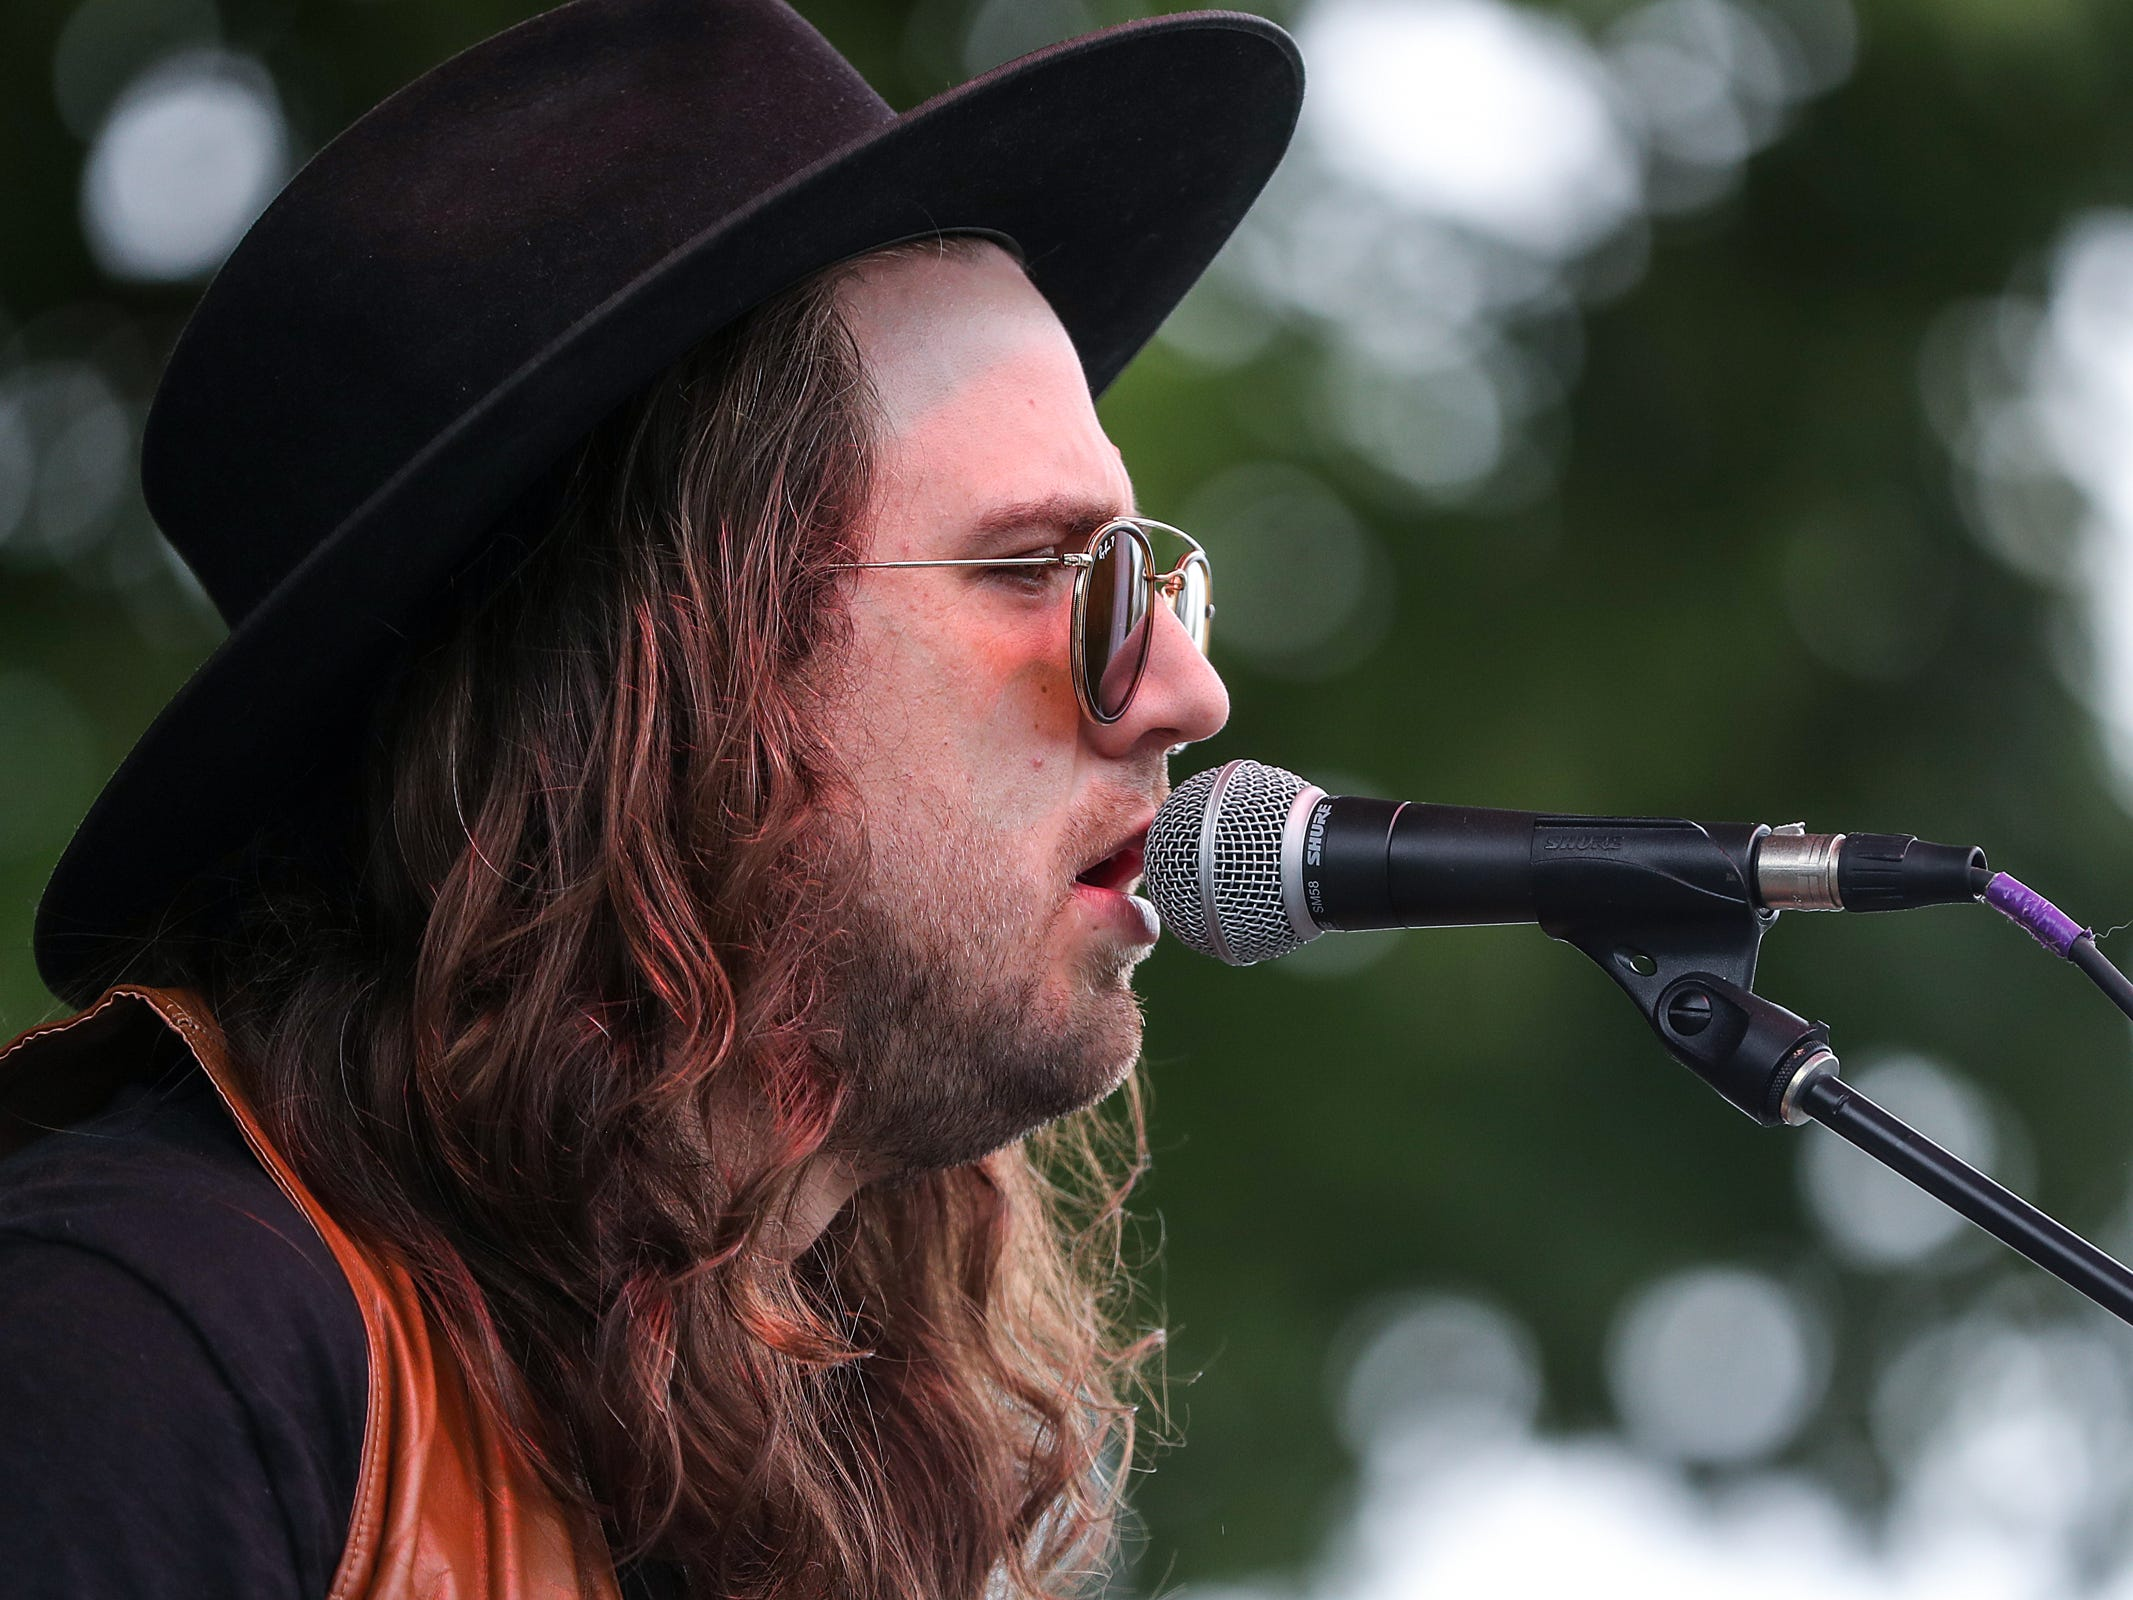 Sam Morrow, of Los Angeles, performs at the inaugural Holler on the Hill music festival at Garfield Park in Indianapolis, Saturday, Sept. 22, 2018.